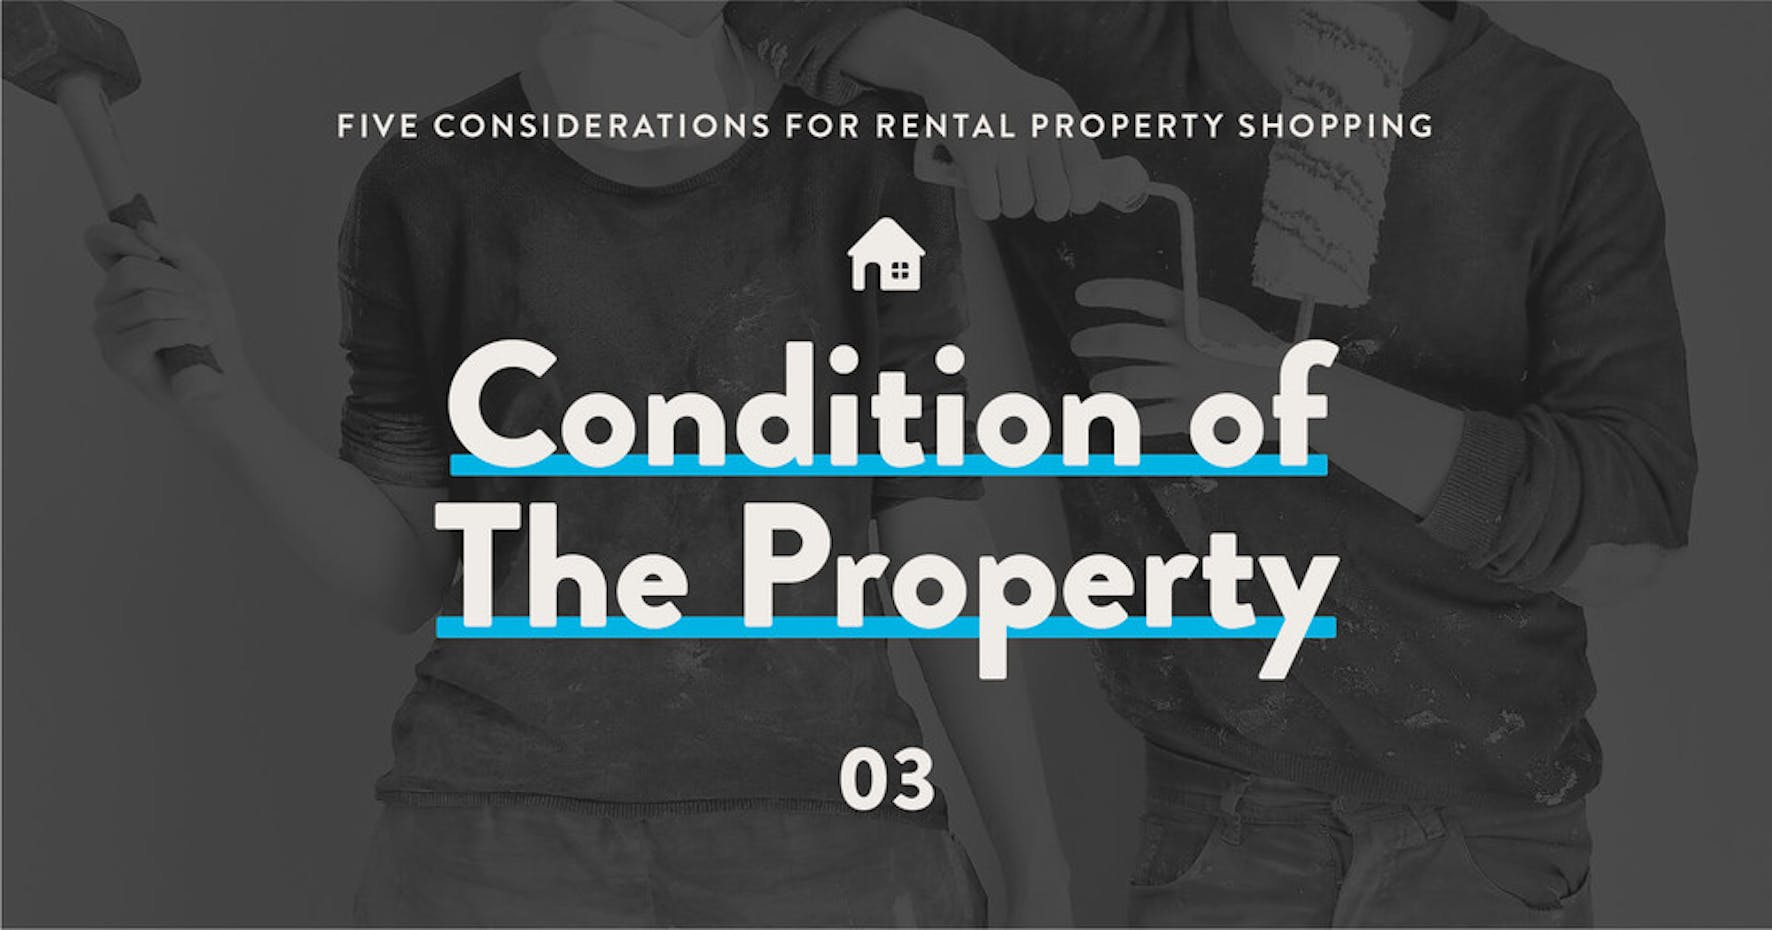 5 considerations for rental property shopping: 3 - Condition of the Property.